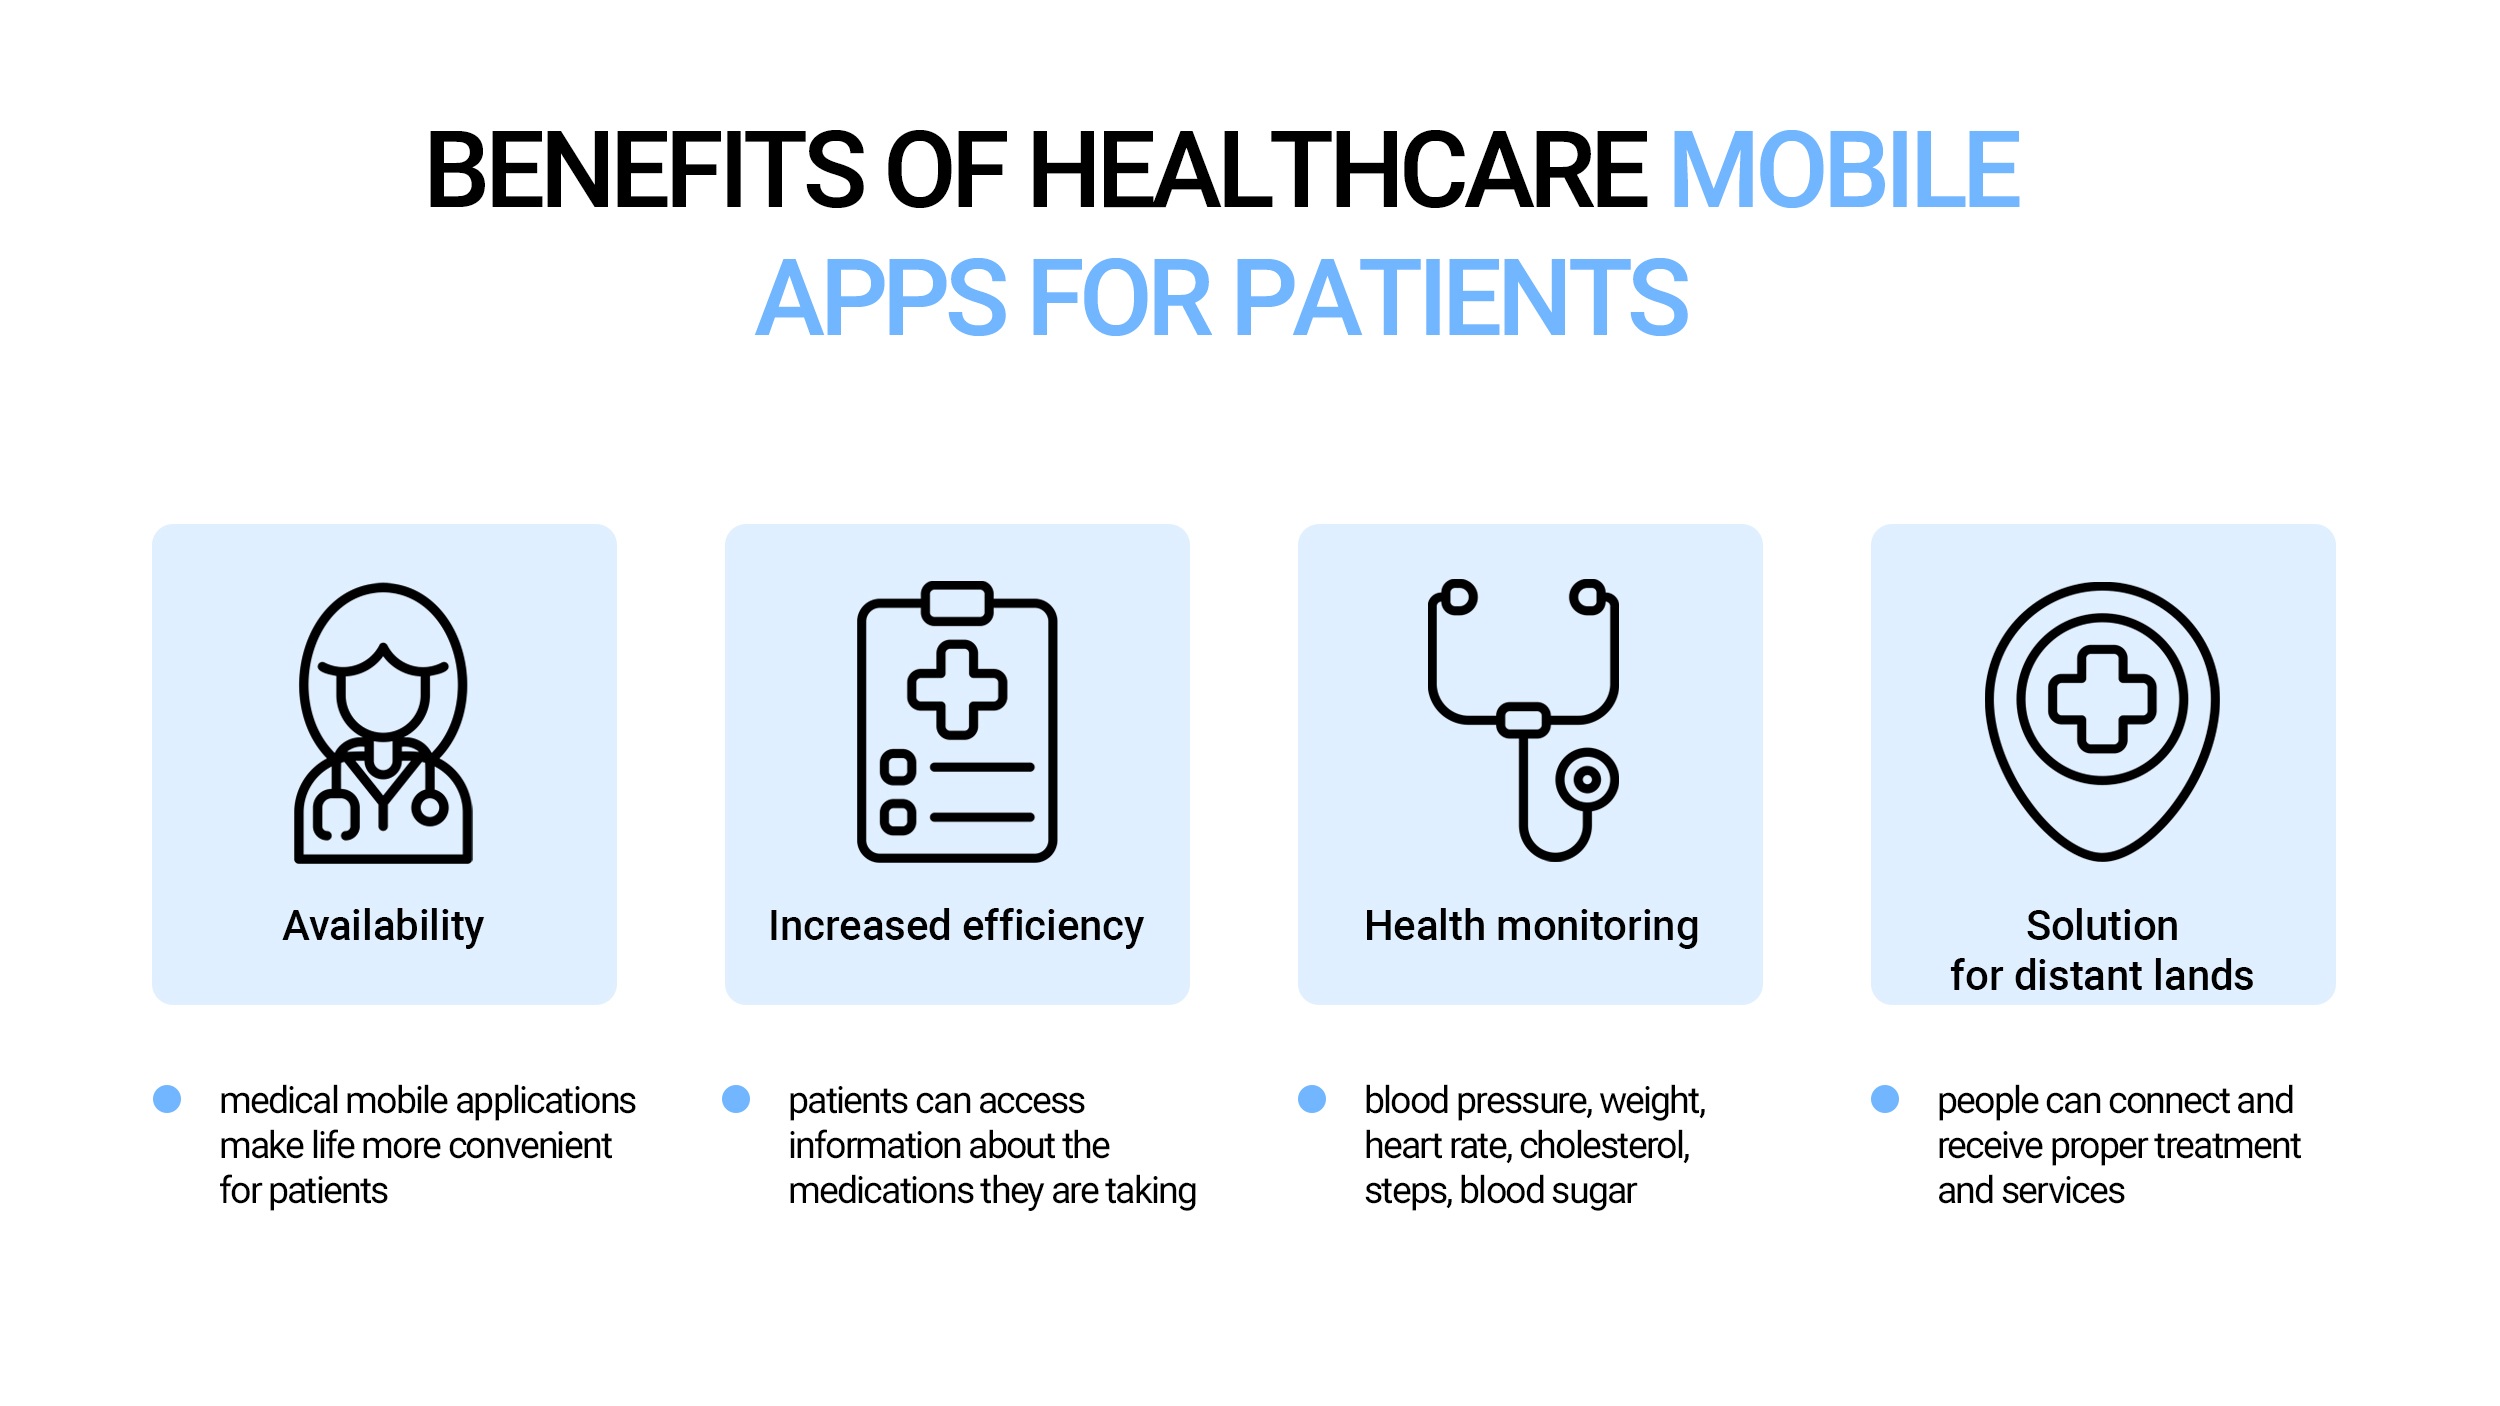 Benefits of healthcare mobile apps for patients